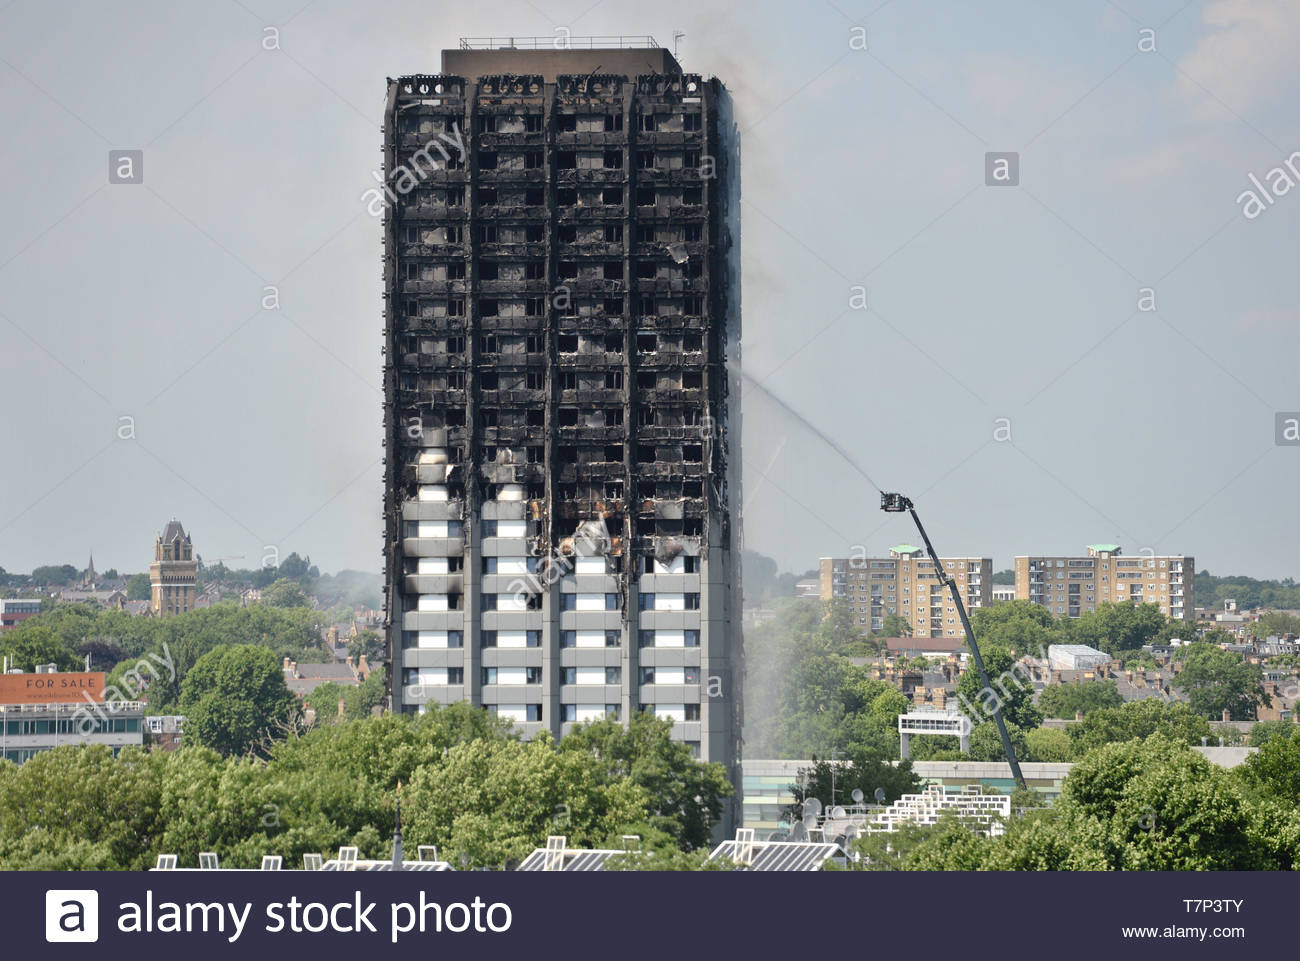 File photo dated 14/06/17 of firefighters spraying water after the fire engulfed Grenfell Tower in west London. Grenfell families have hit out at the 'amnesia fix' of corporations during the public inquiry, and called the delay in bringing in urgent fire safety recommendations a farce. - Stock Image